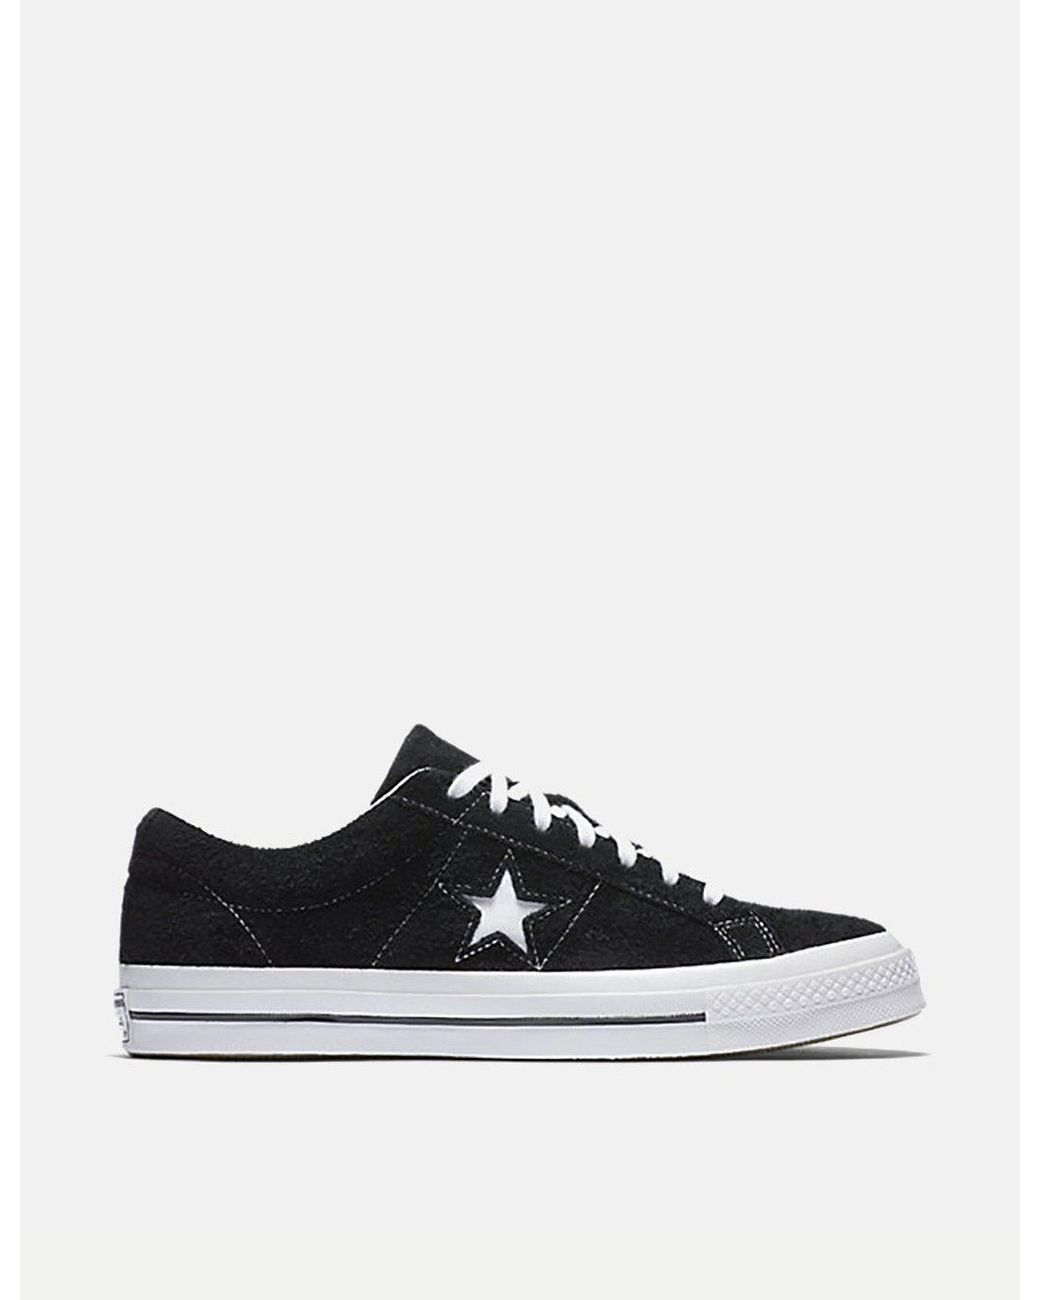 a51c34442c40 Lyst - Converse One Star 74 in Black for Men - Save 49%